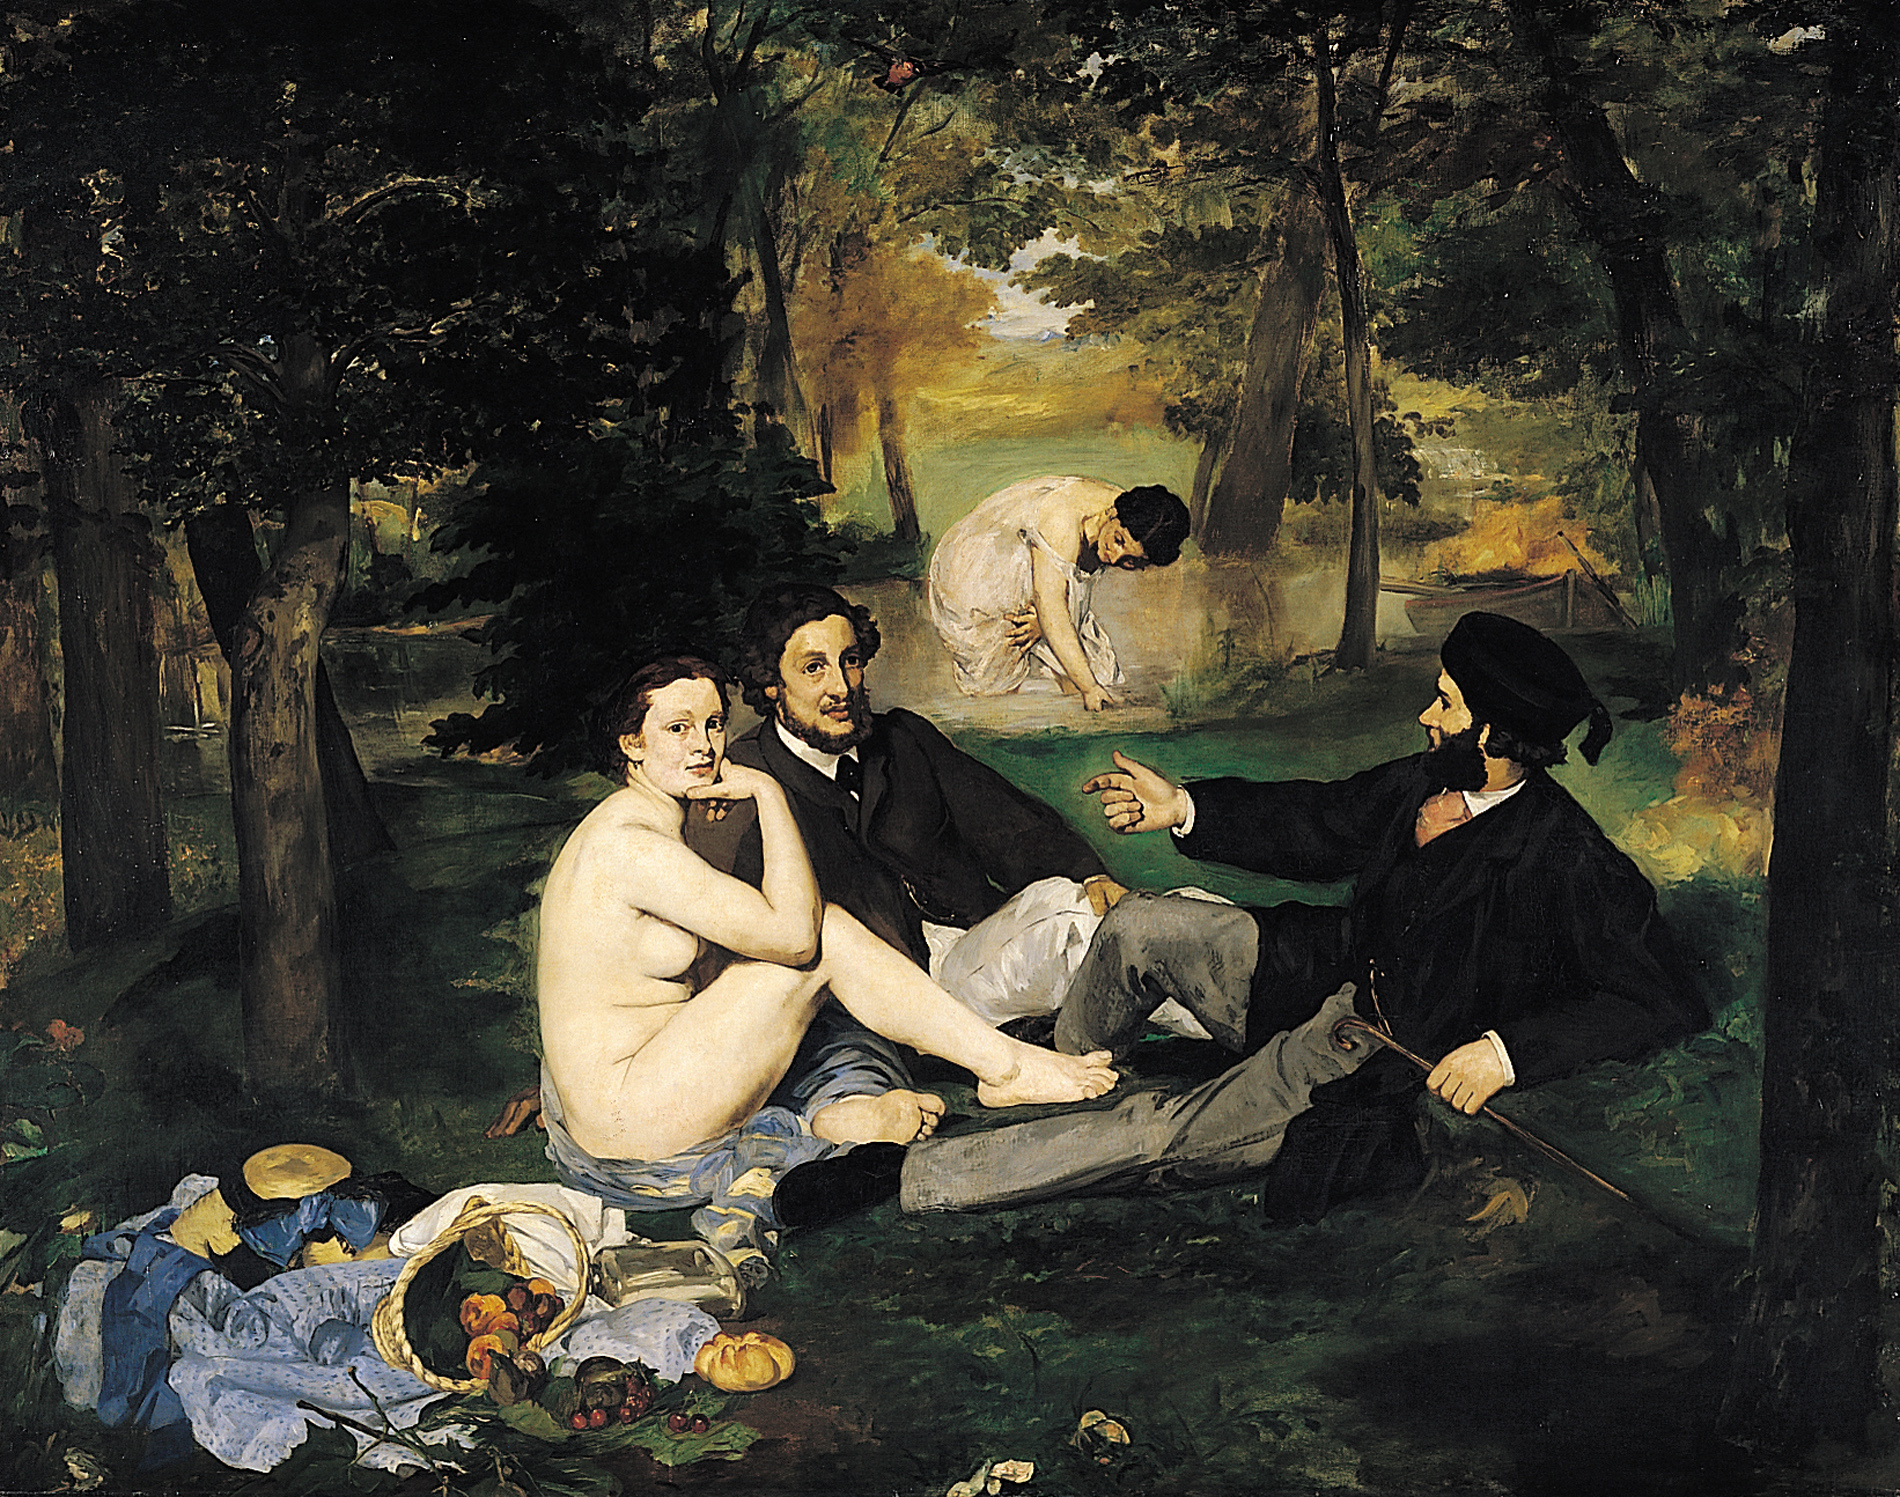 https://i1.wp.com/uploads5.wikiart.org/images/edouard-manet/the-luncheon-on-the-grass-1863.jpg